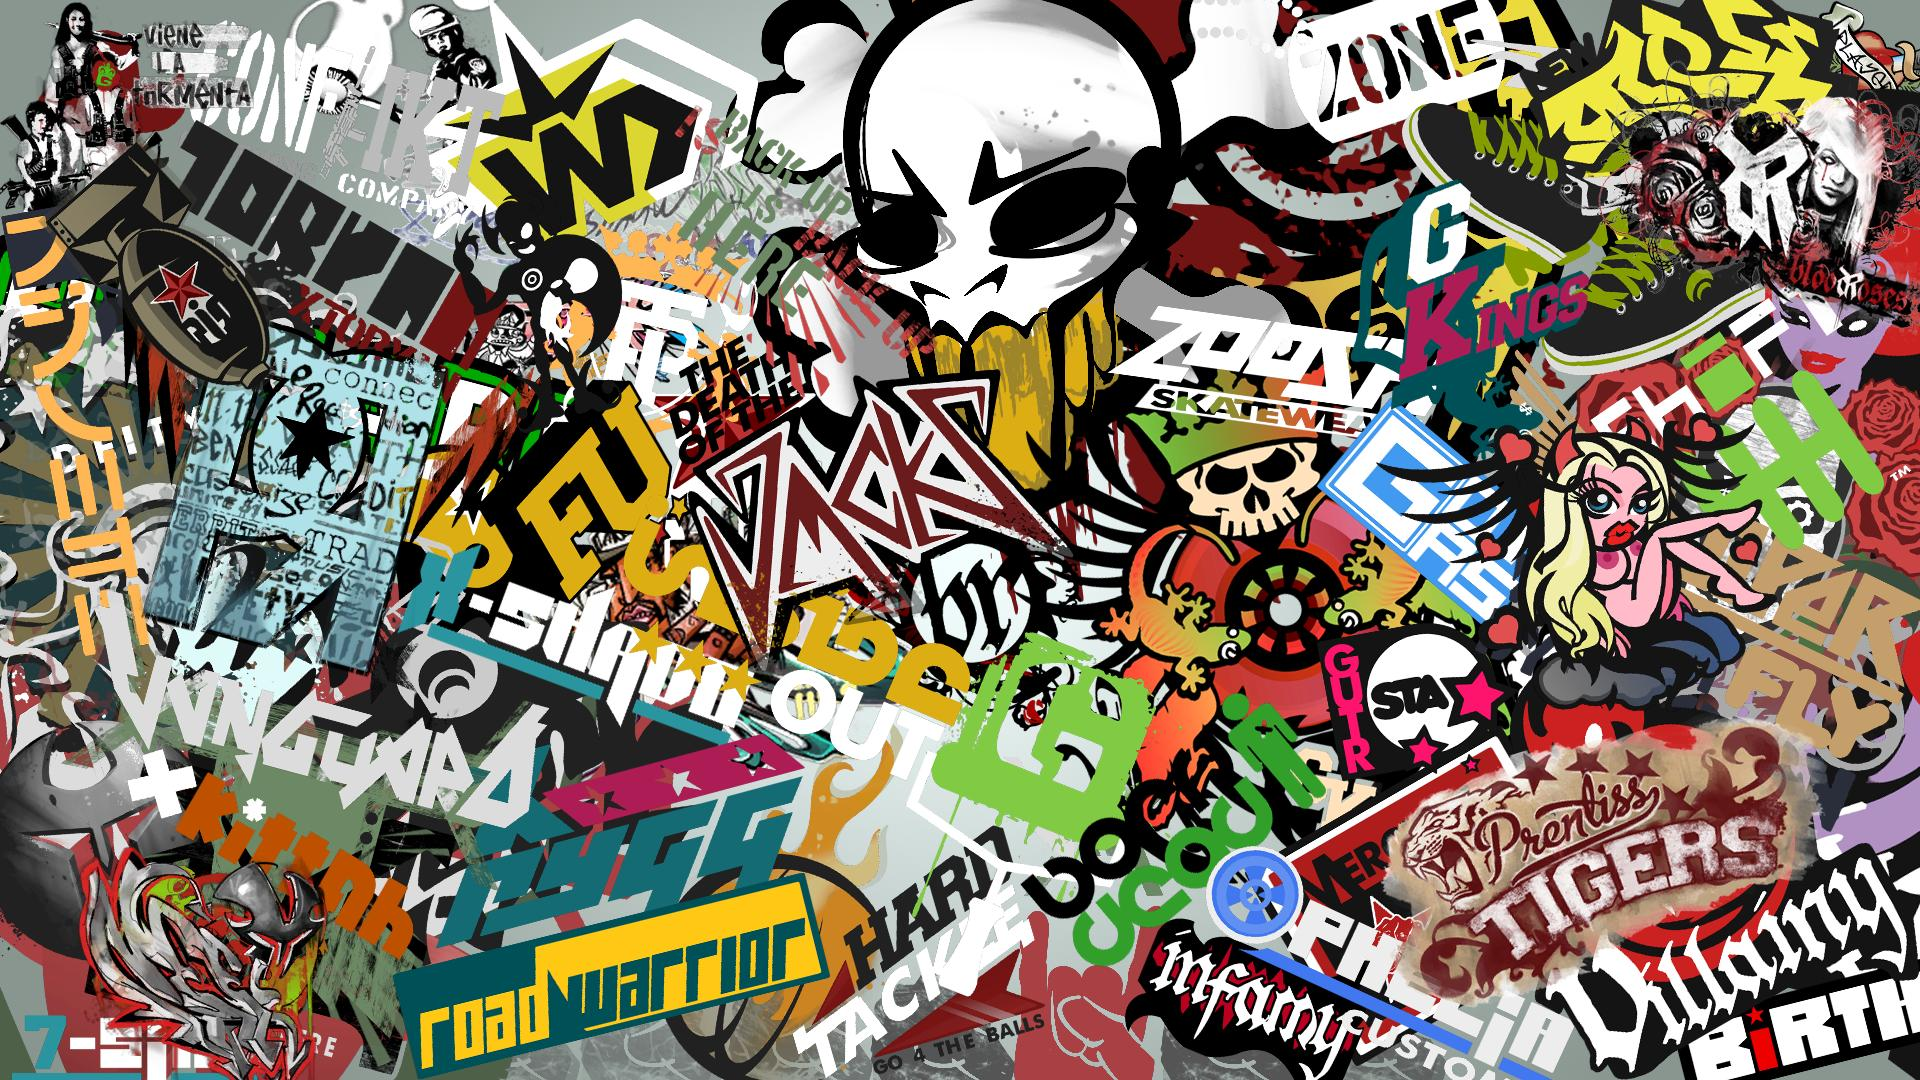 Sticker bomb wallpaper images pictures becuo 1920x1080